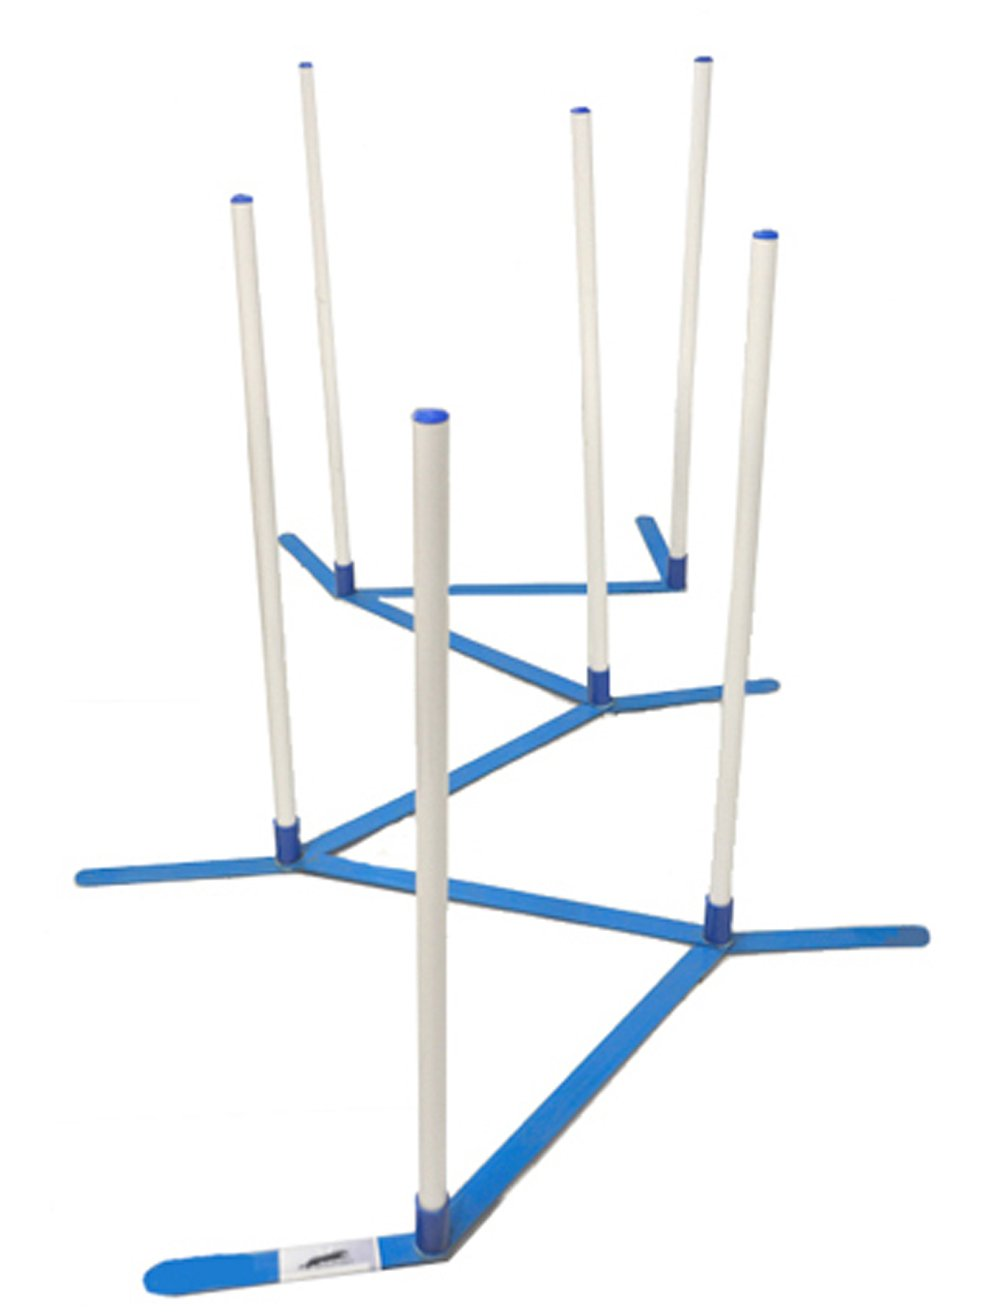 Agility Weave Poles Adjustable 6 Pole Set with Carrying Case and Grass Stakes by Cool Runners